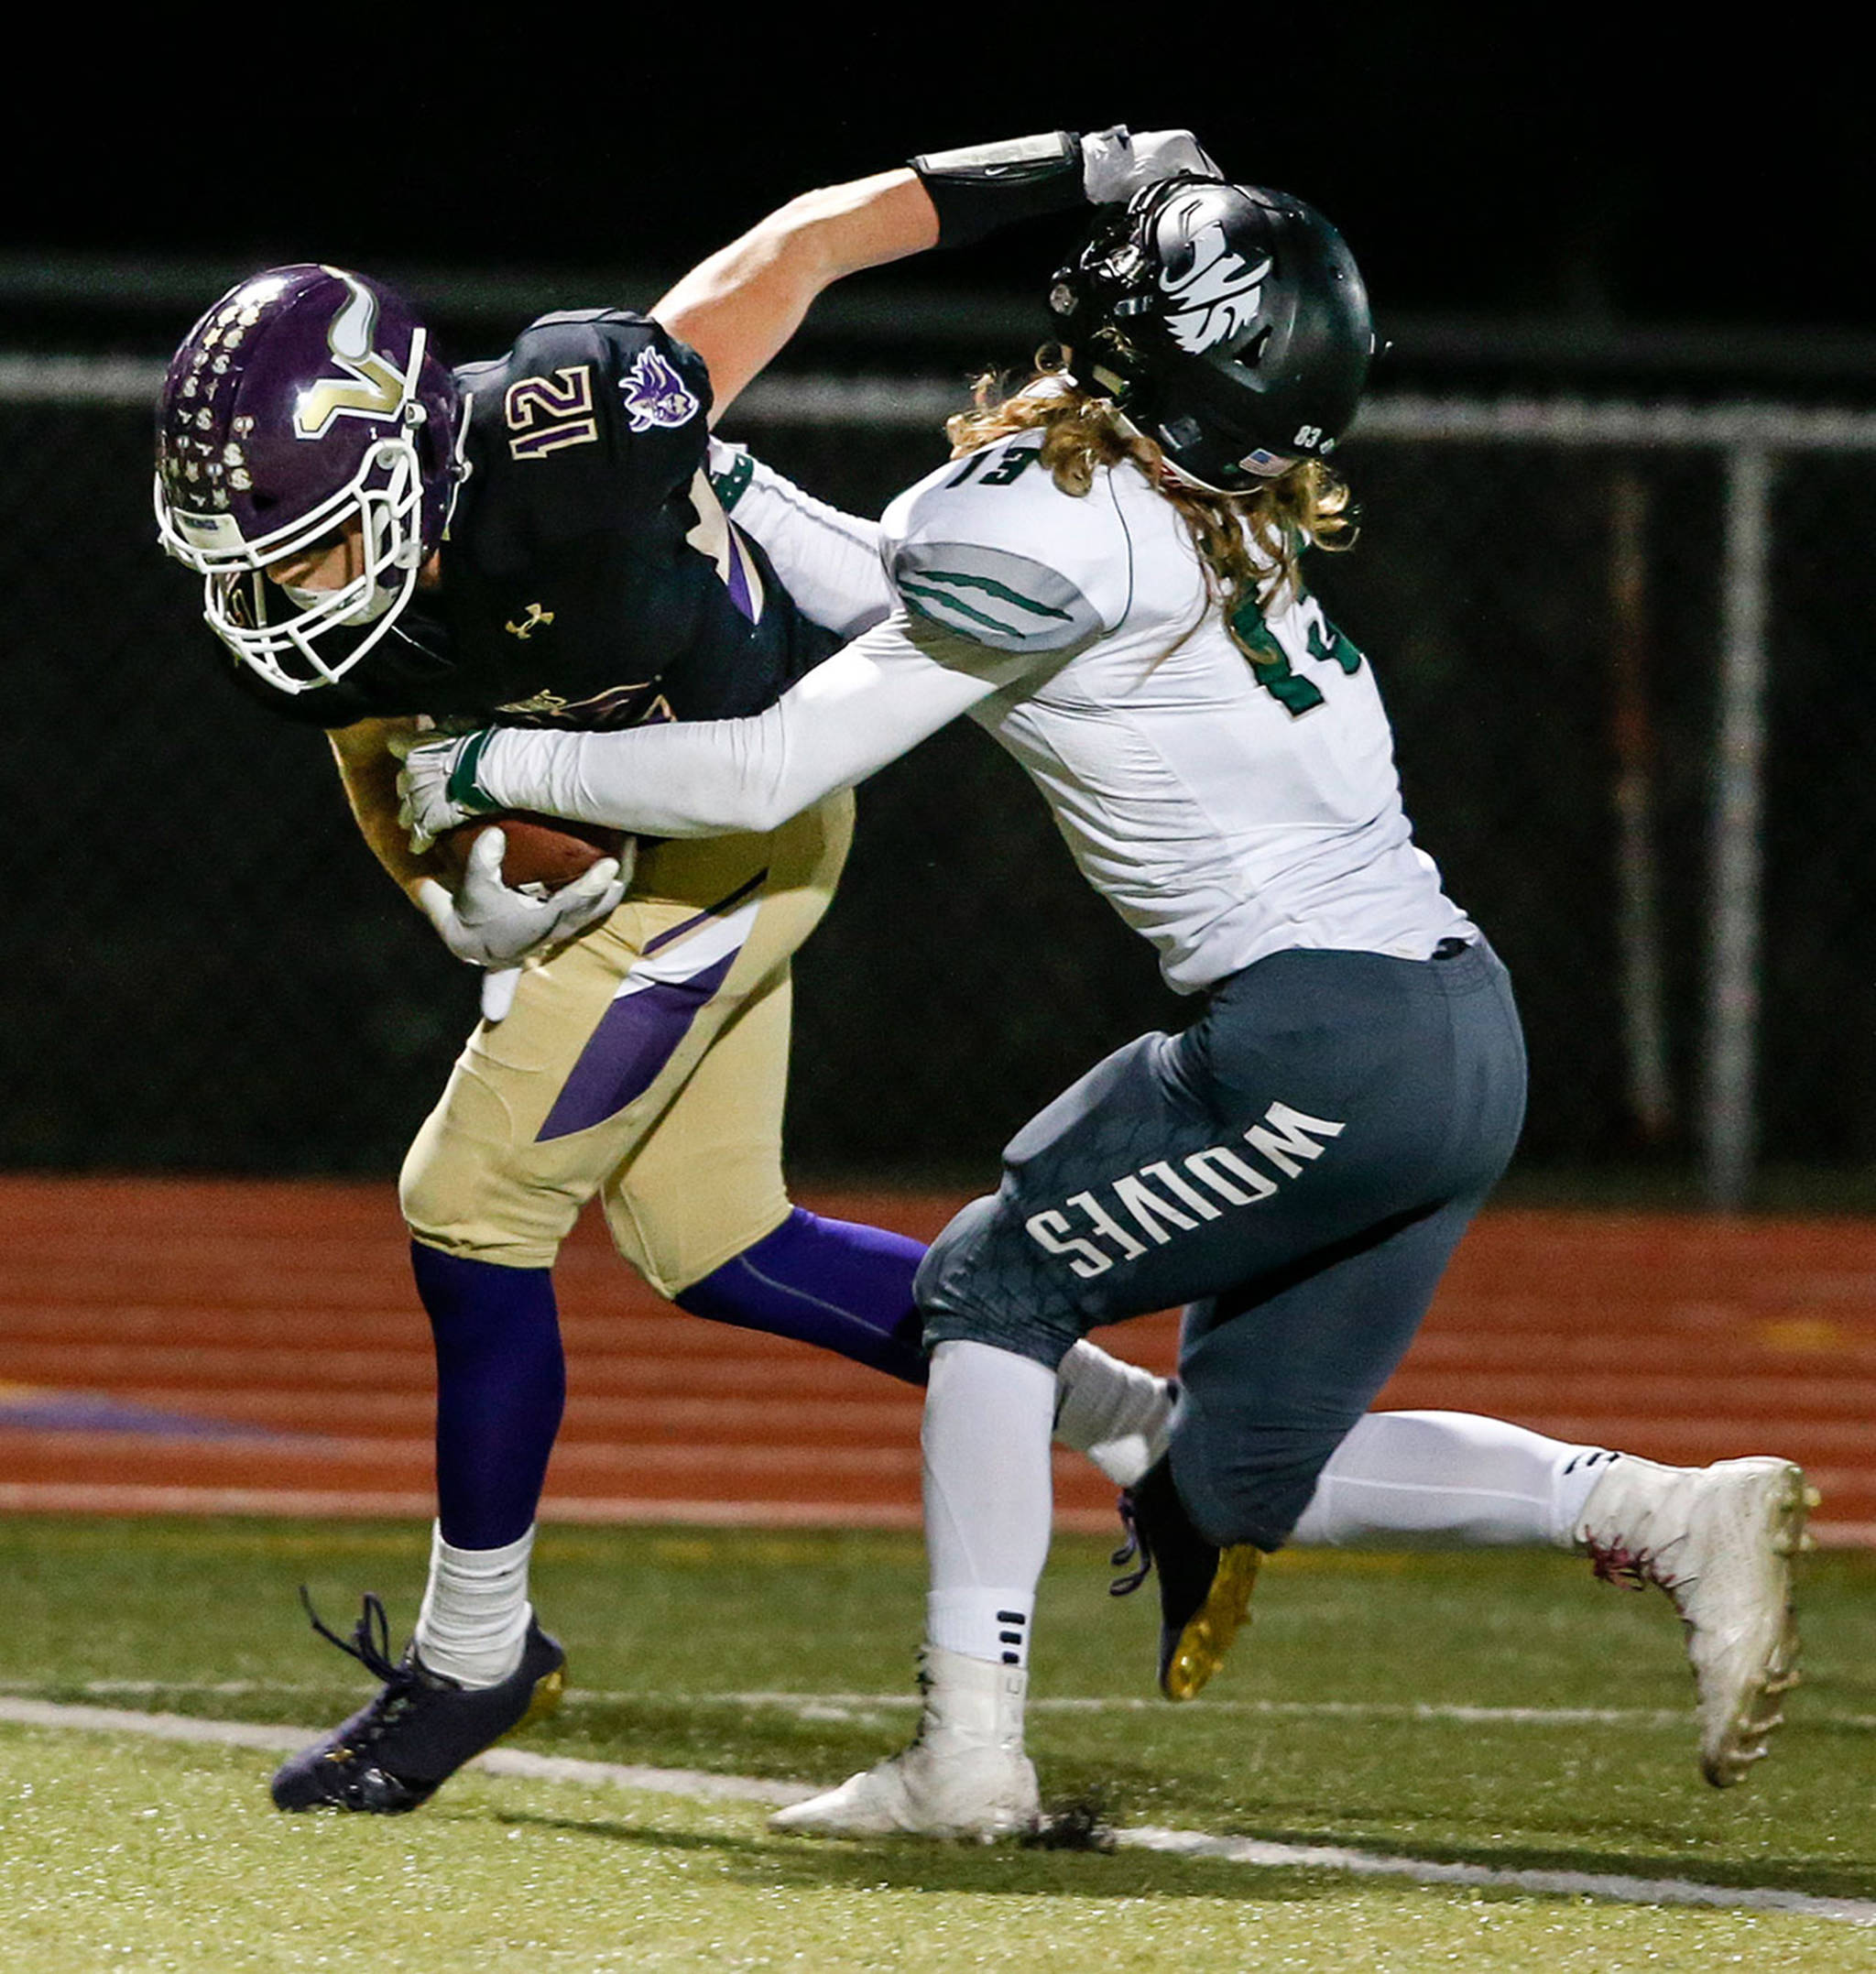 Lake Stevens' Austin Murren (left) stiff-arms Jackson's Chris Grayson during a game at Lake Stevens High School on Sept. 29. (Ian Terry / The Herald)